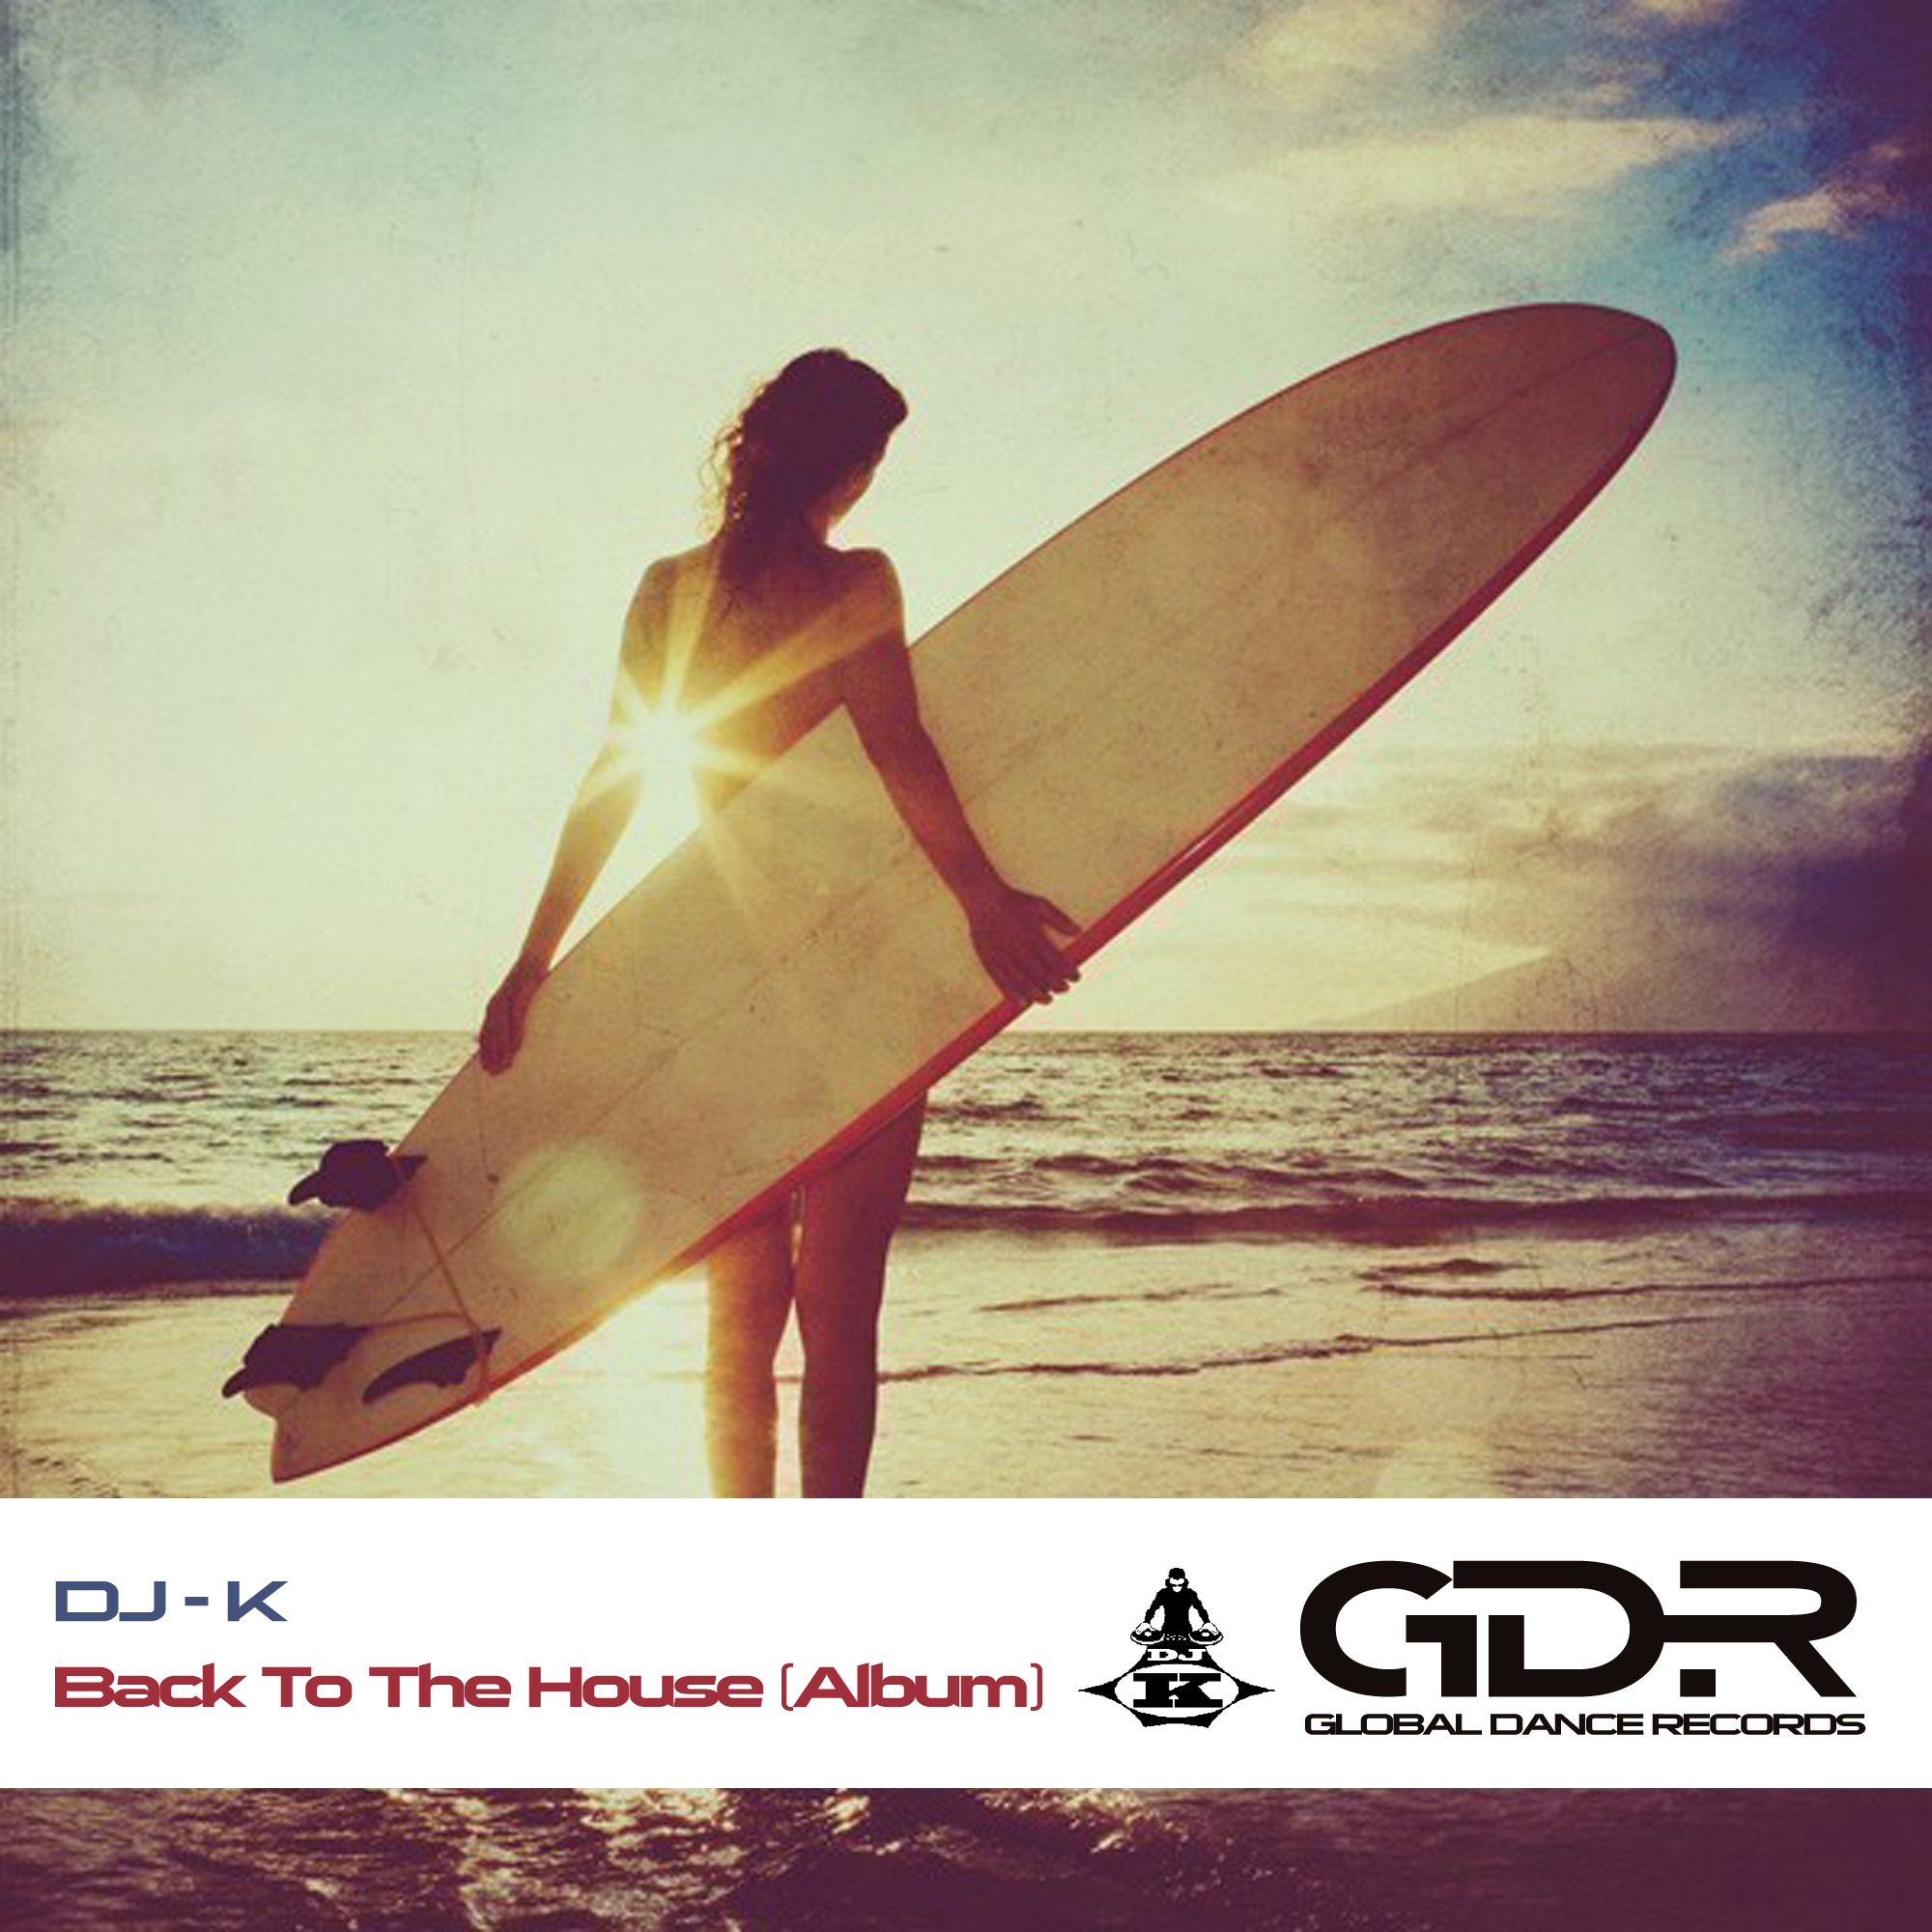 DJ-K – Back To The House (Album) OFFICIAL RELEASE